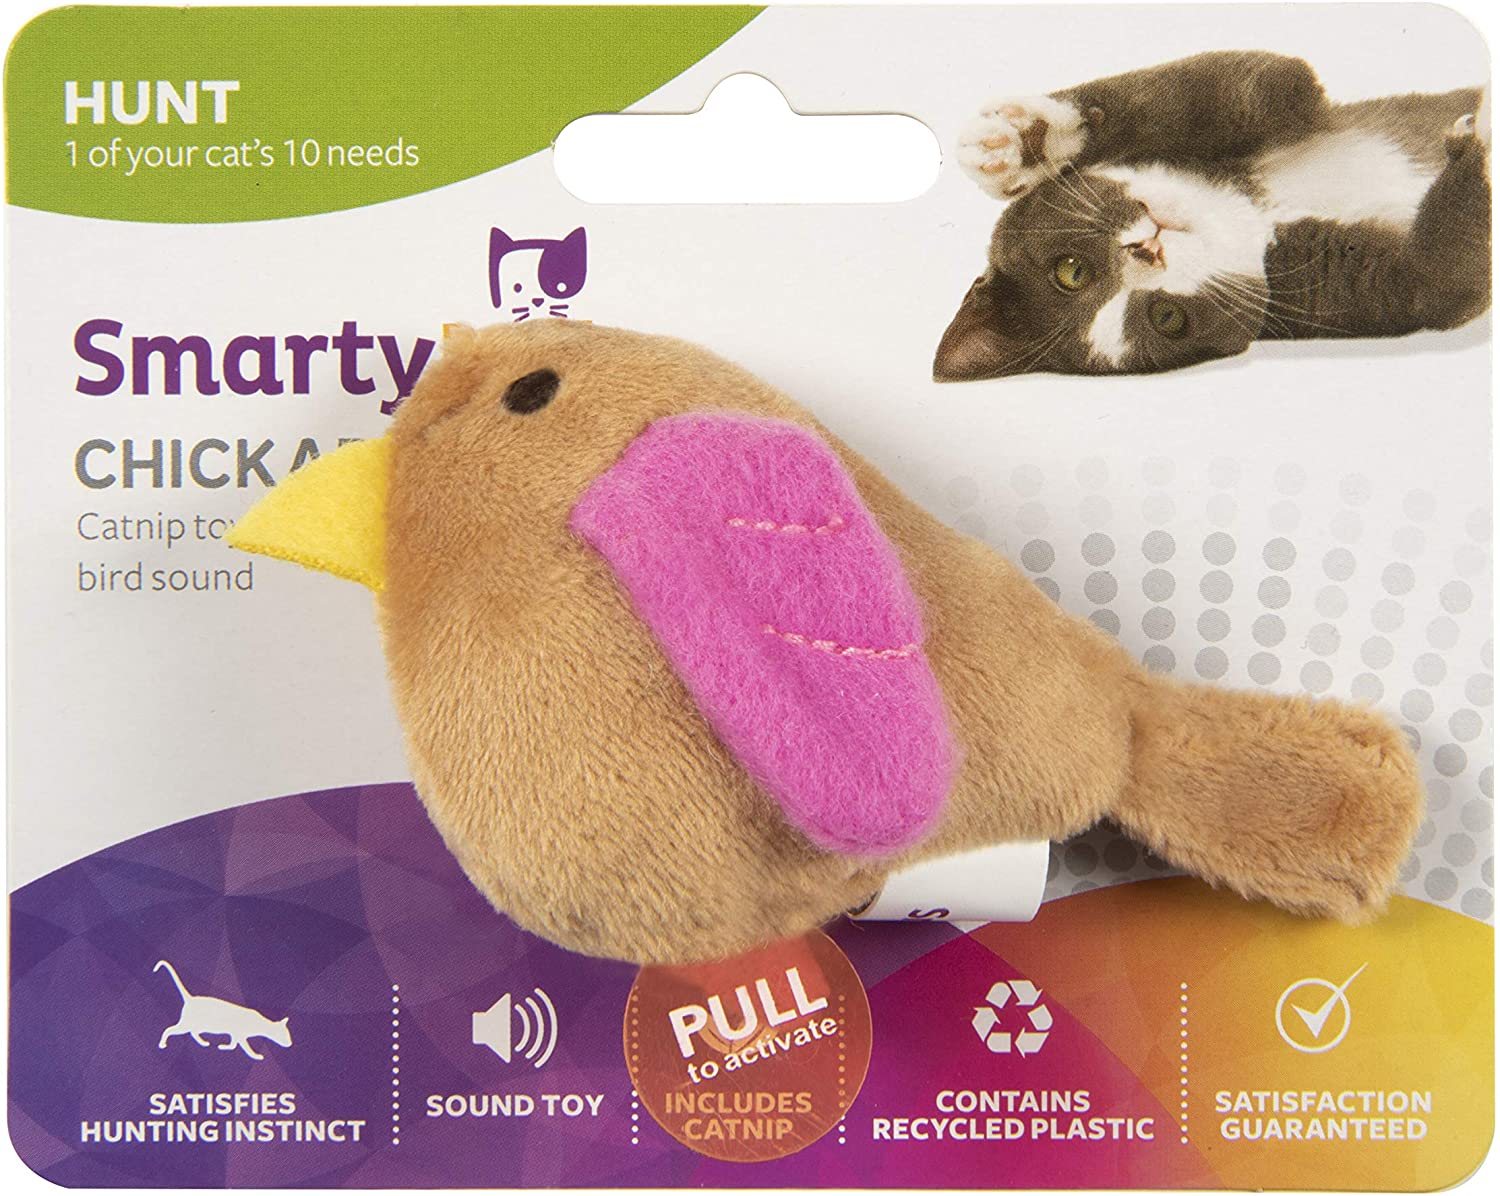 SmartyKat Electronic Sound, Motion or Light Cat Toys : Pet Mice And Animal Toys : Pet Supplies